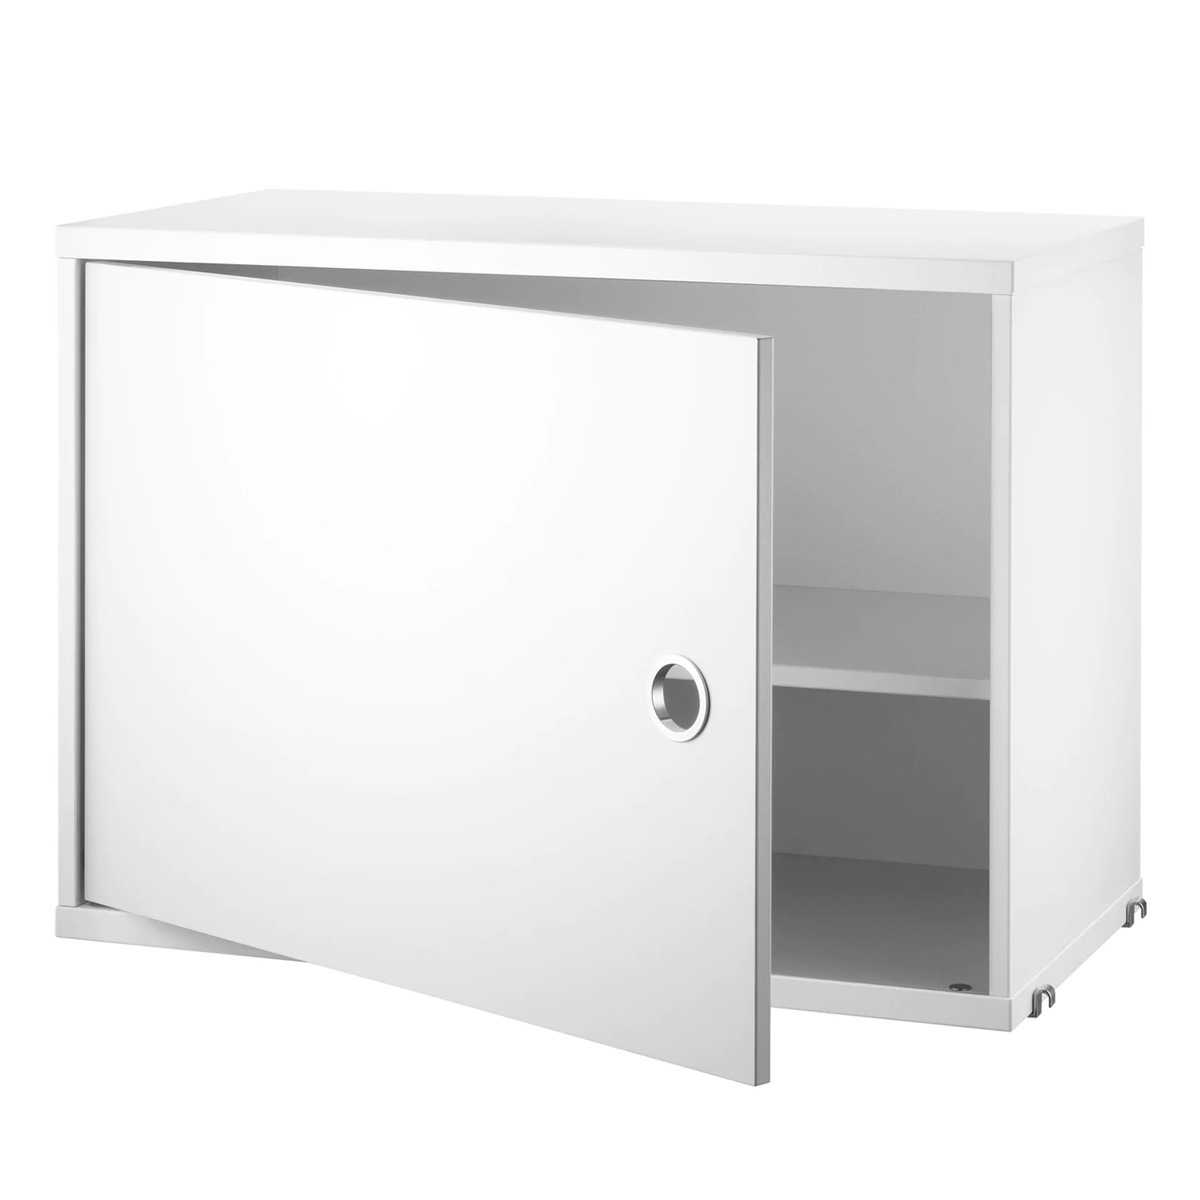 String Furniture String cabinet with swing door, 58 x 30 cm, white from String Furniture